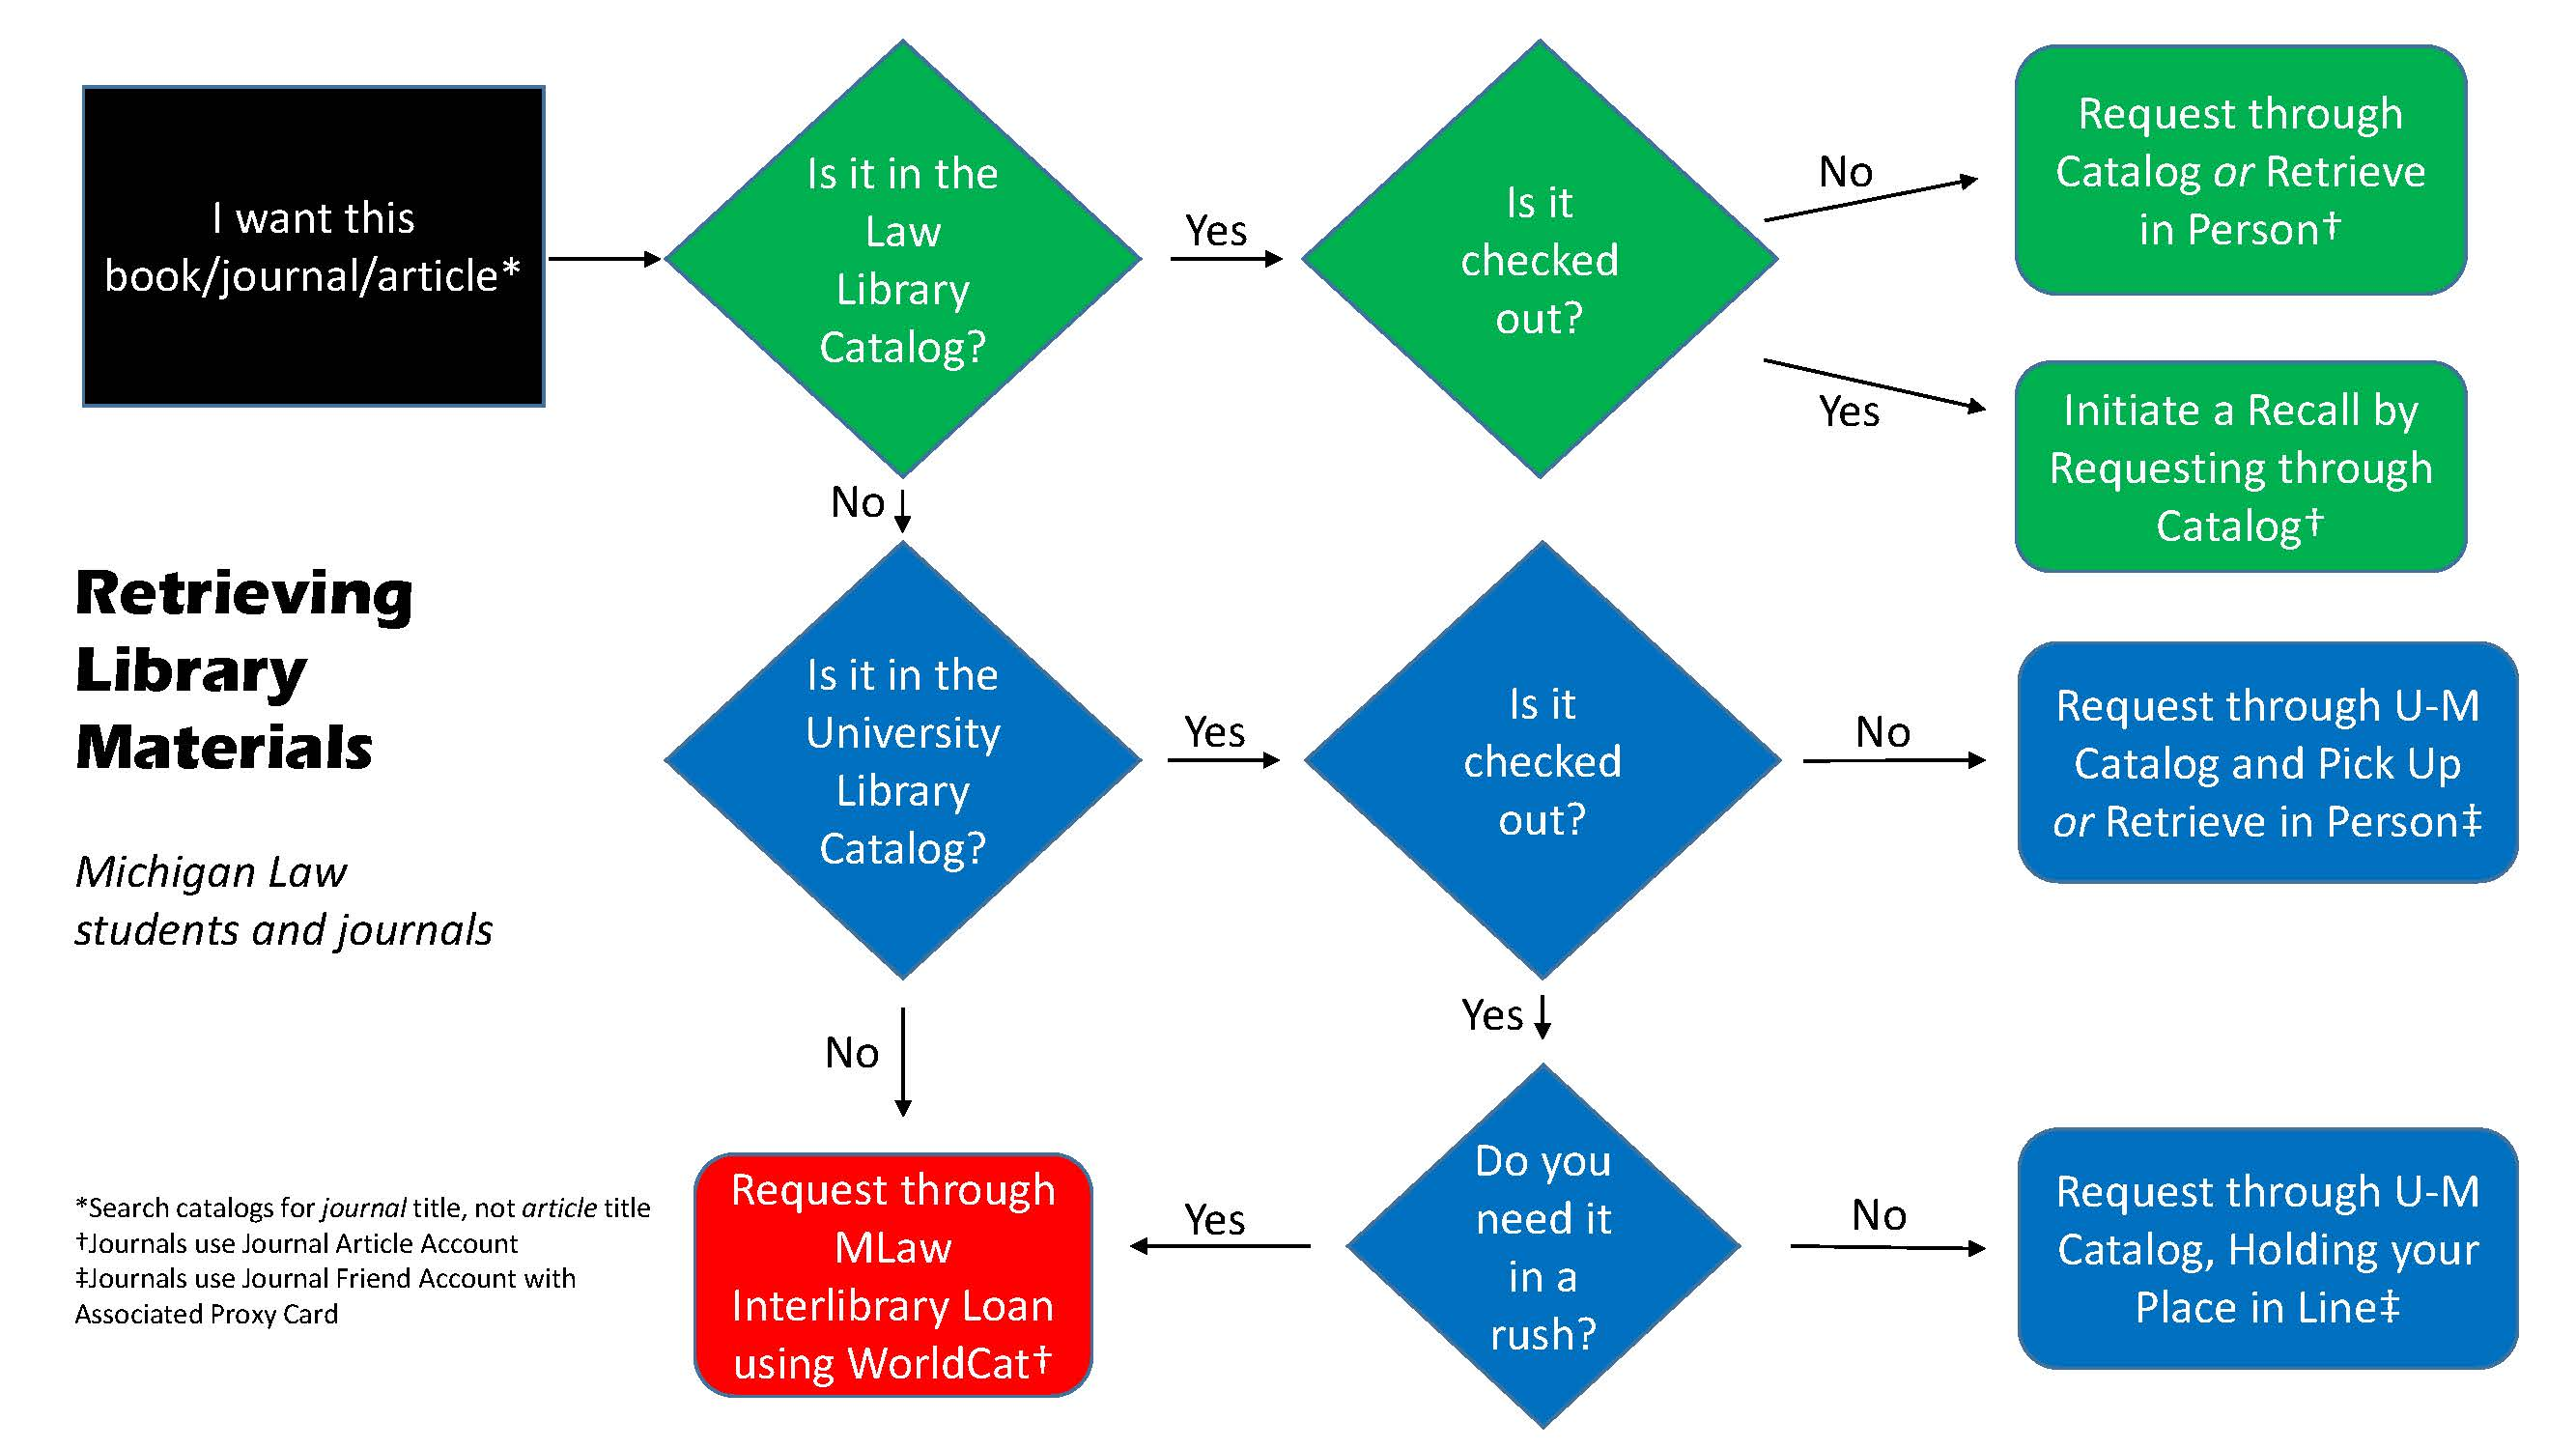 Decision Tree for where to look for materials on camps